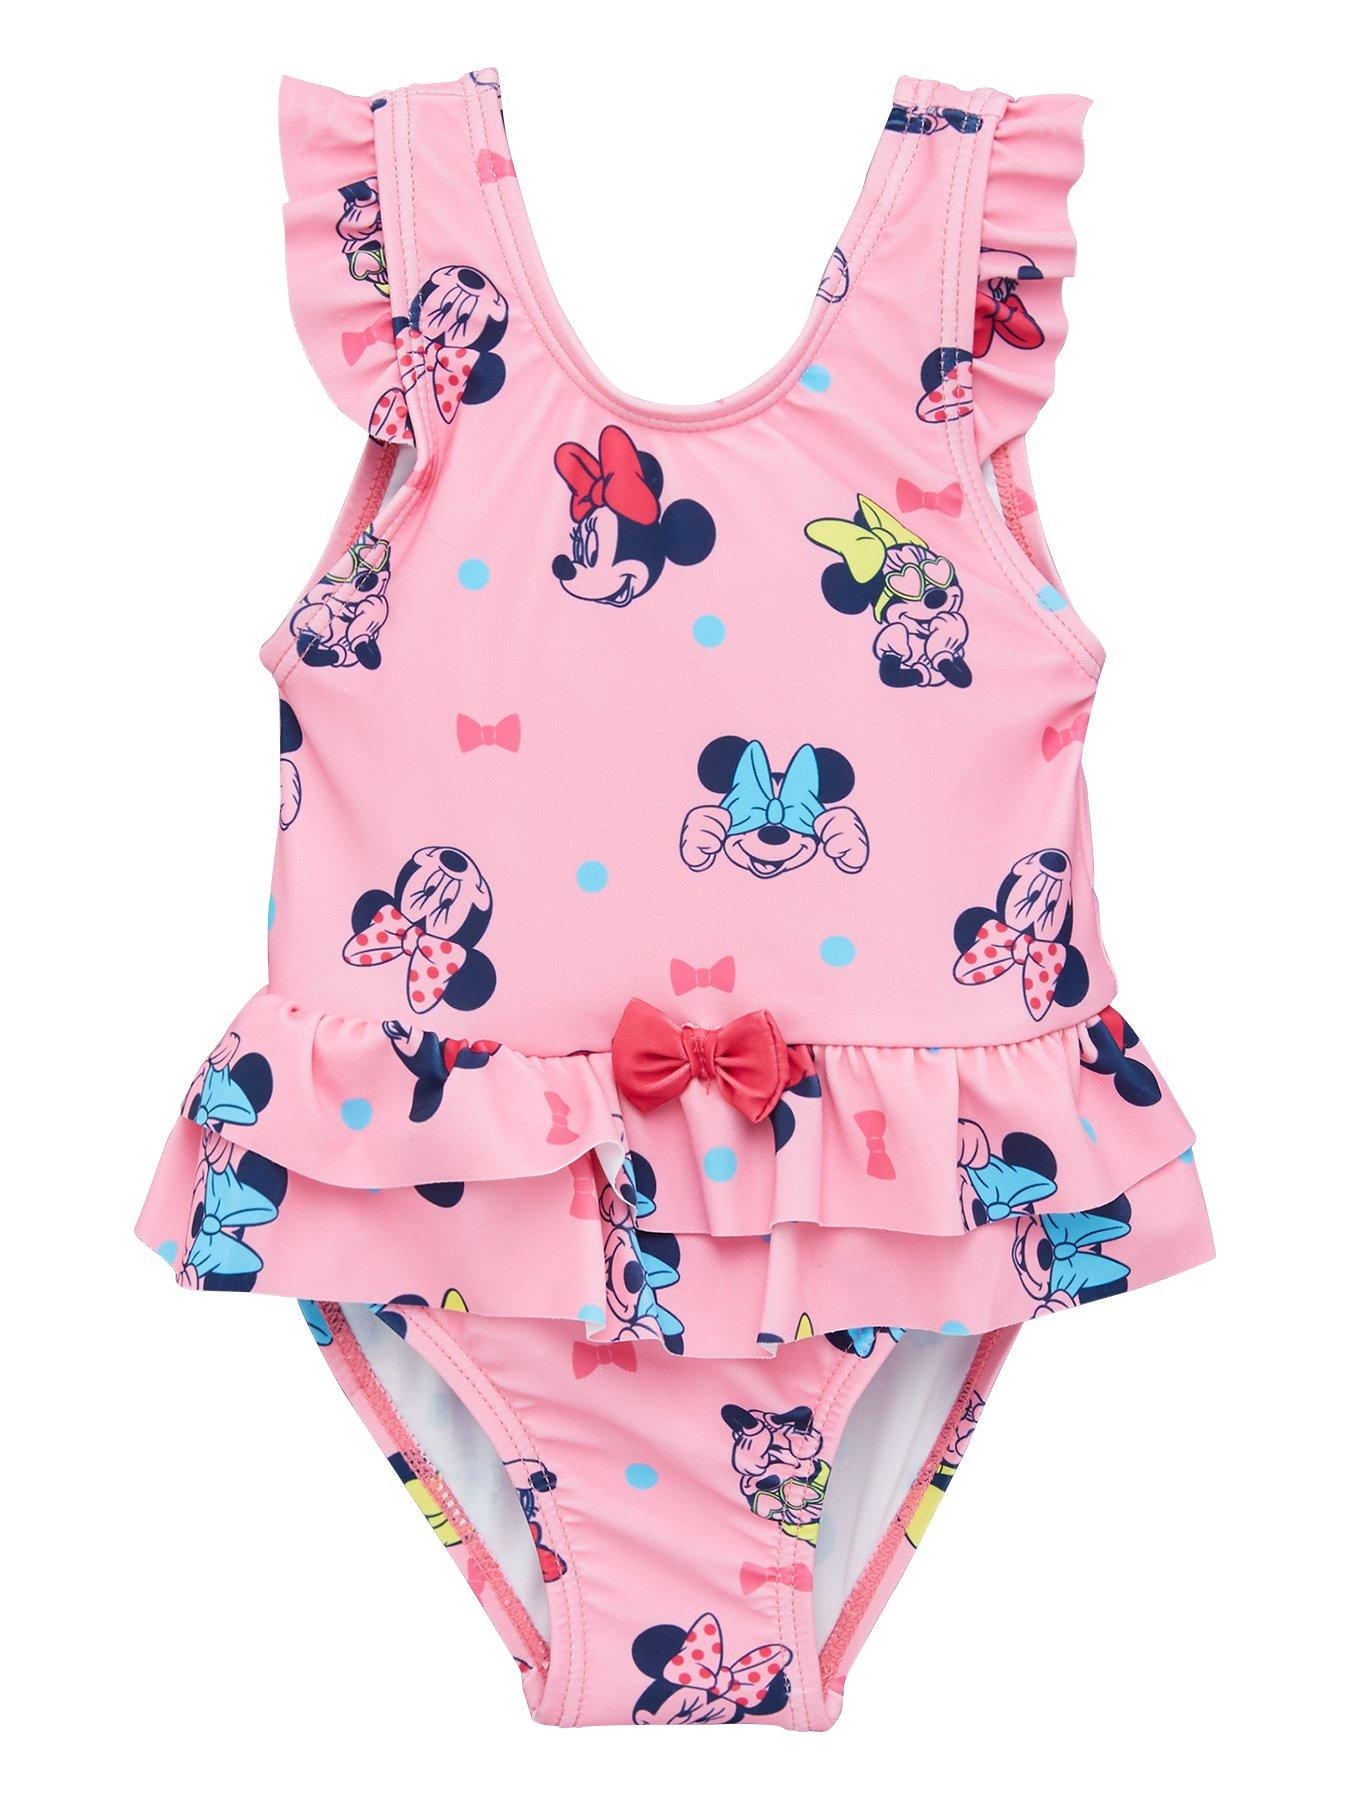 NEW GIRLS DISNEY MINNIE MOUSE SWIMMING COSTUME NAVY-PINK BOW SWIM SUIT 3-8 YEARS